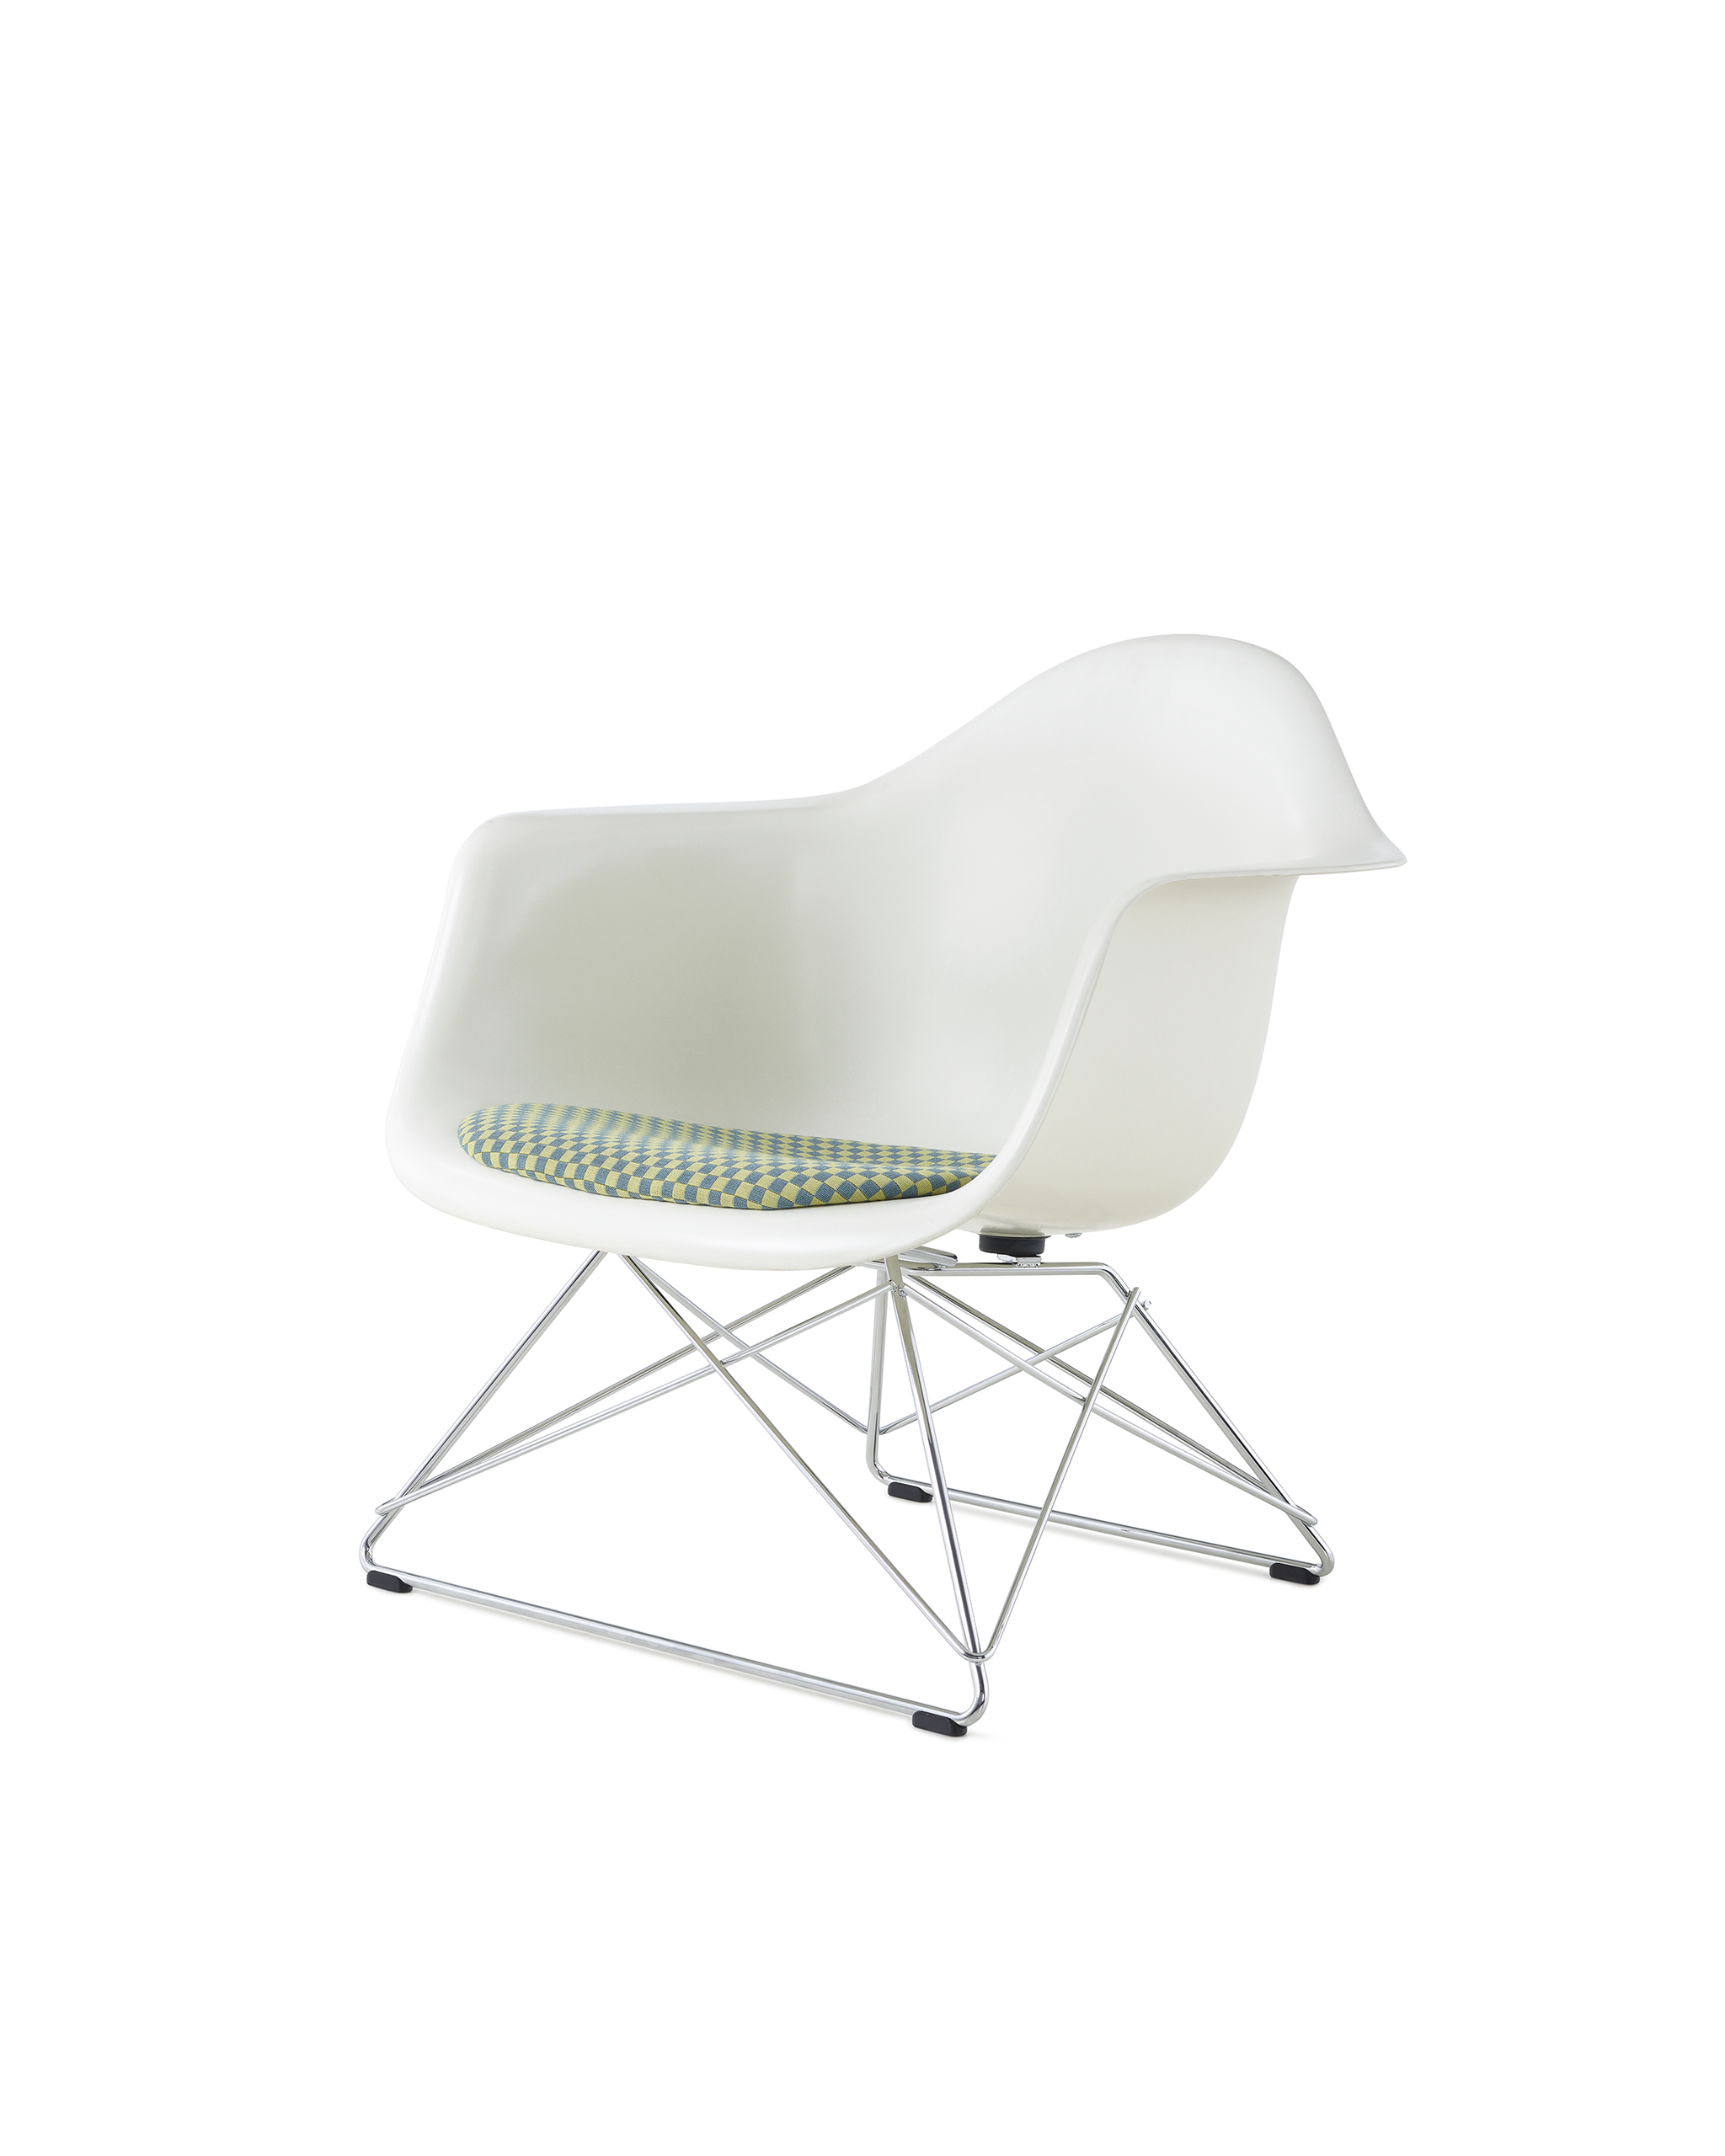 Eames LWB White with Seatpad